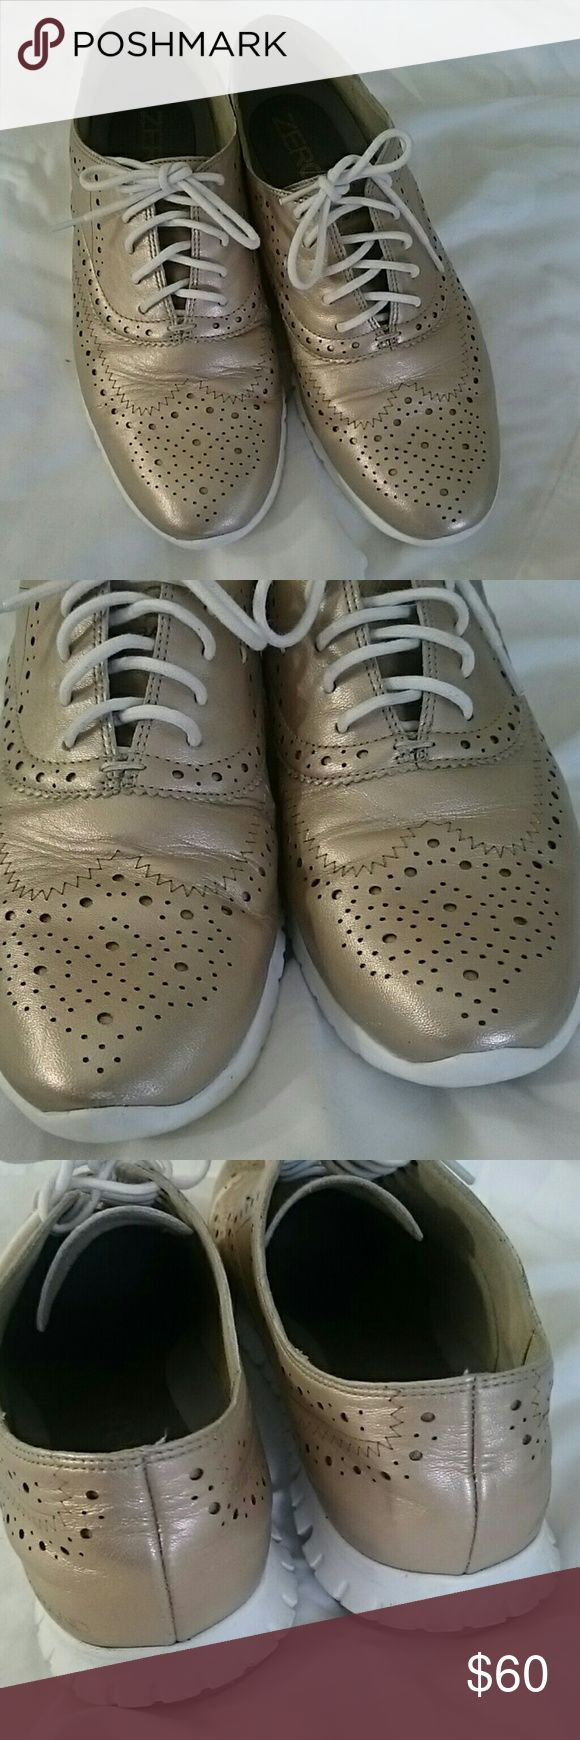 Cole Haan Zero Grand Gold Gently used, perfect shape. Minor scratches but not too visible. Cole Haan Shoes